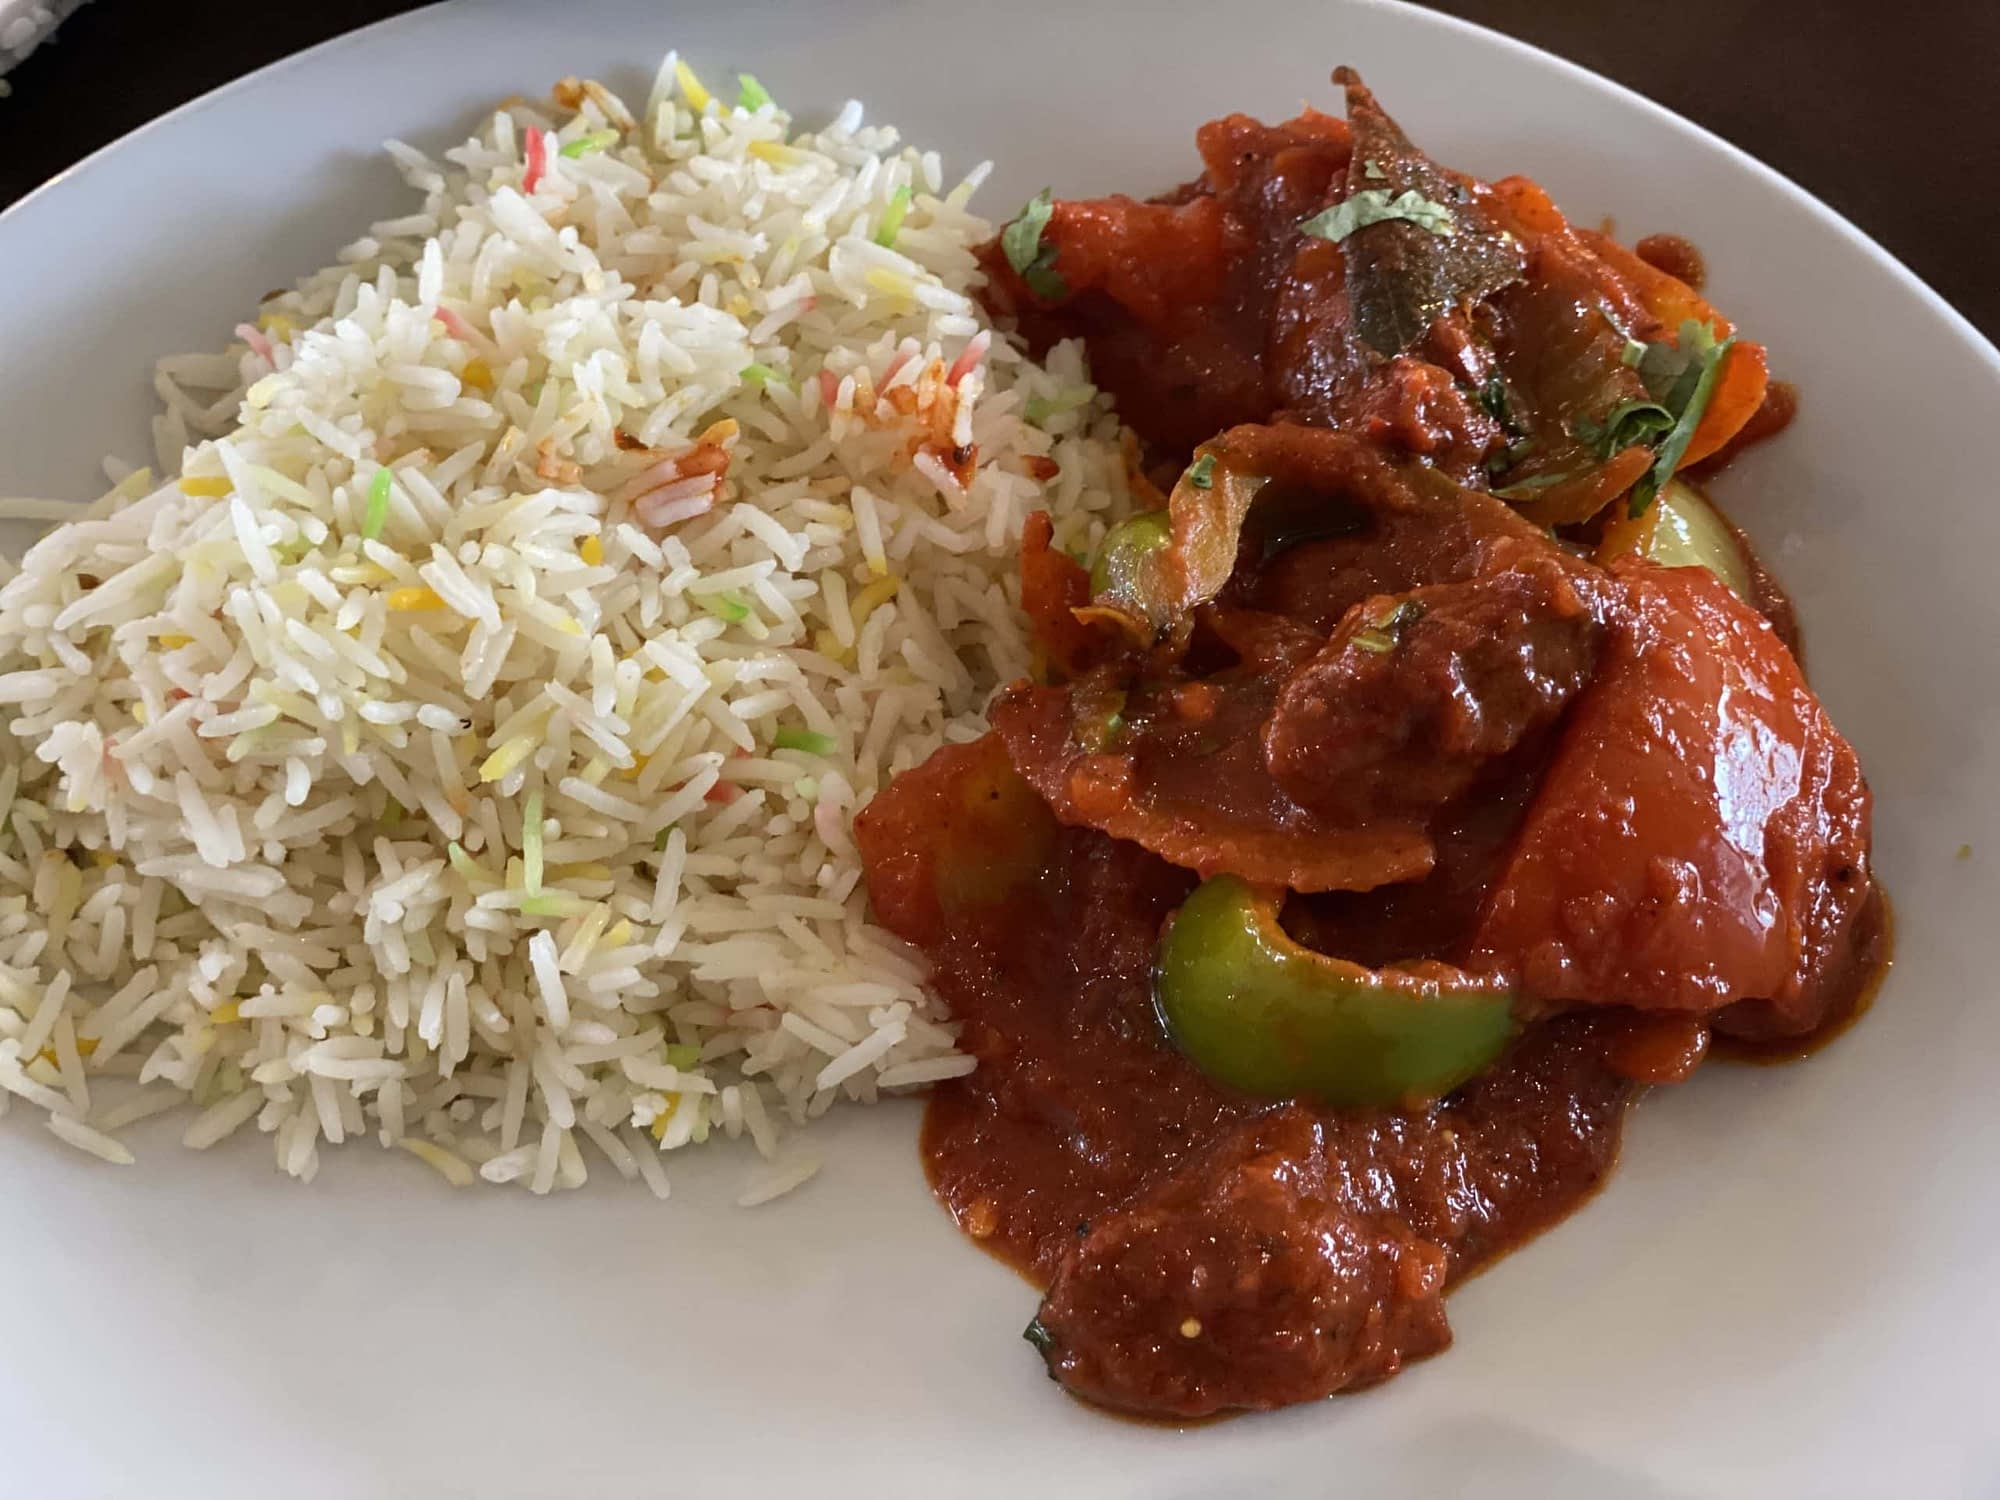 Lamb Balti & Pilau Rice at Bombay 8 Restaurant